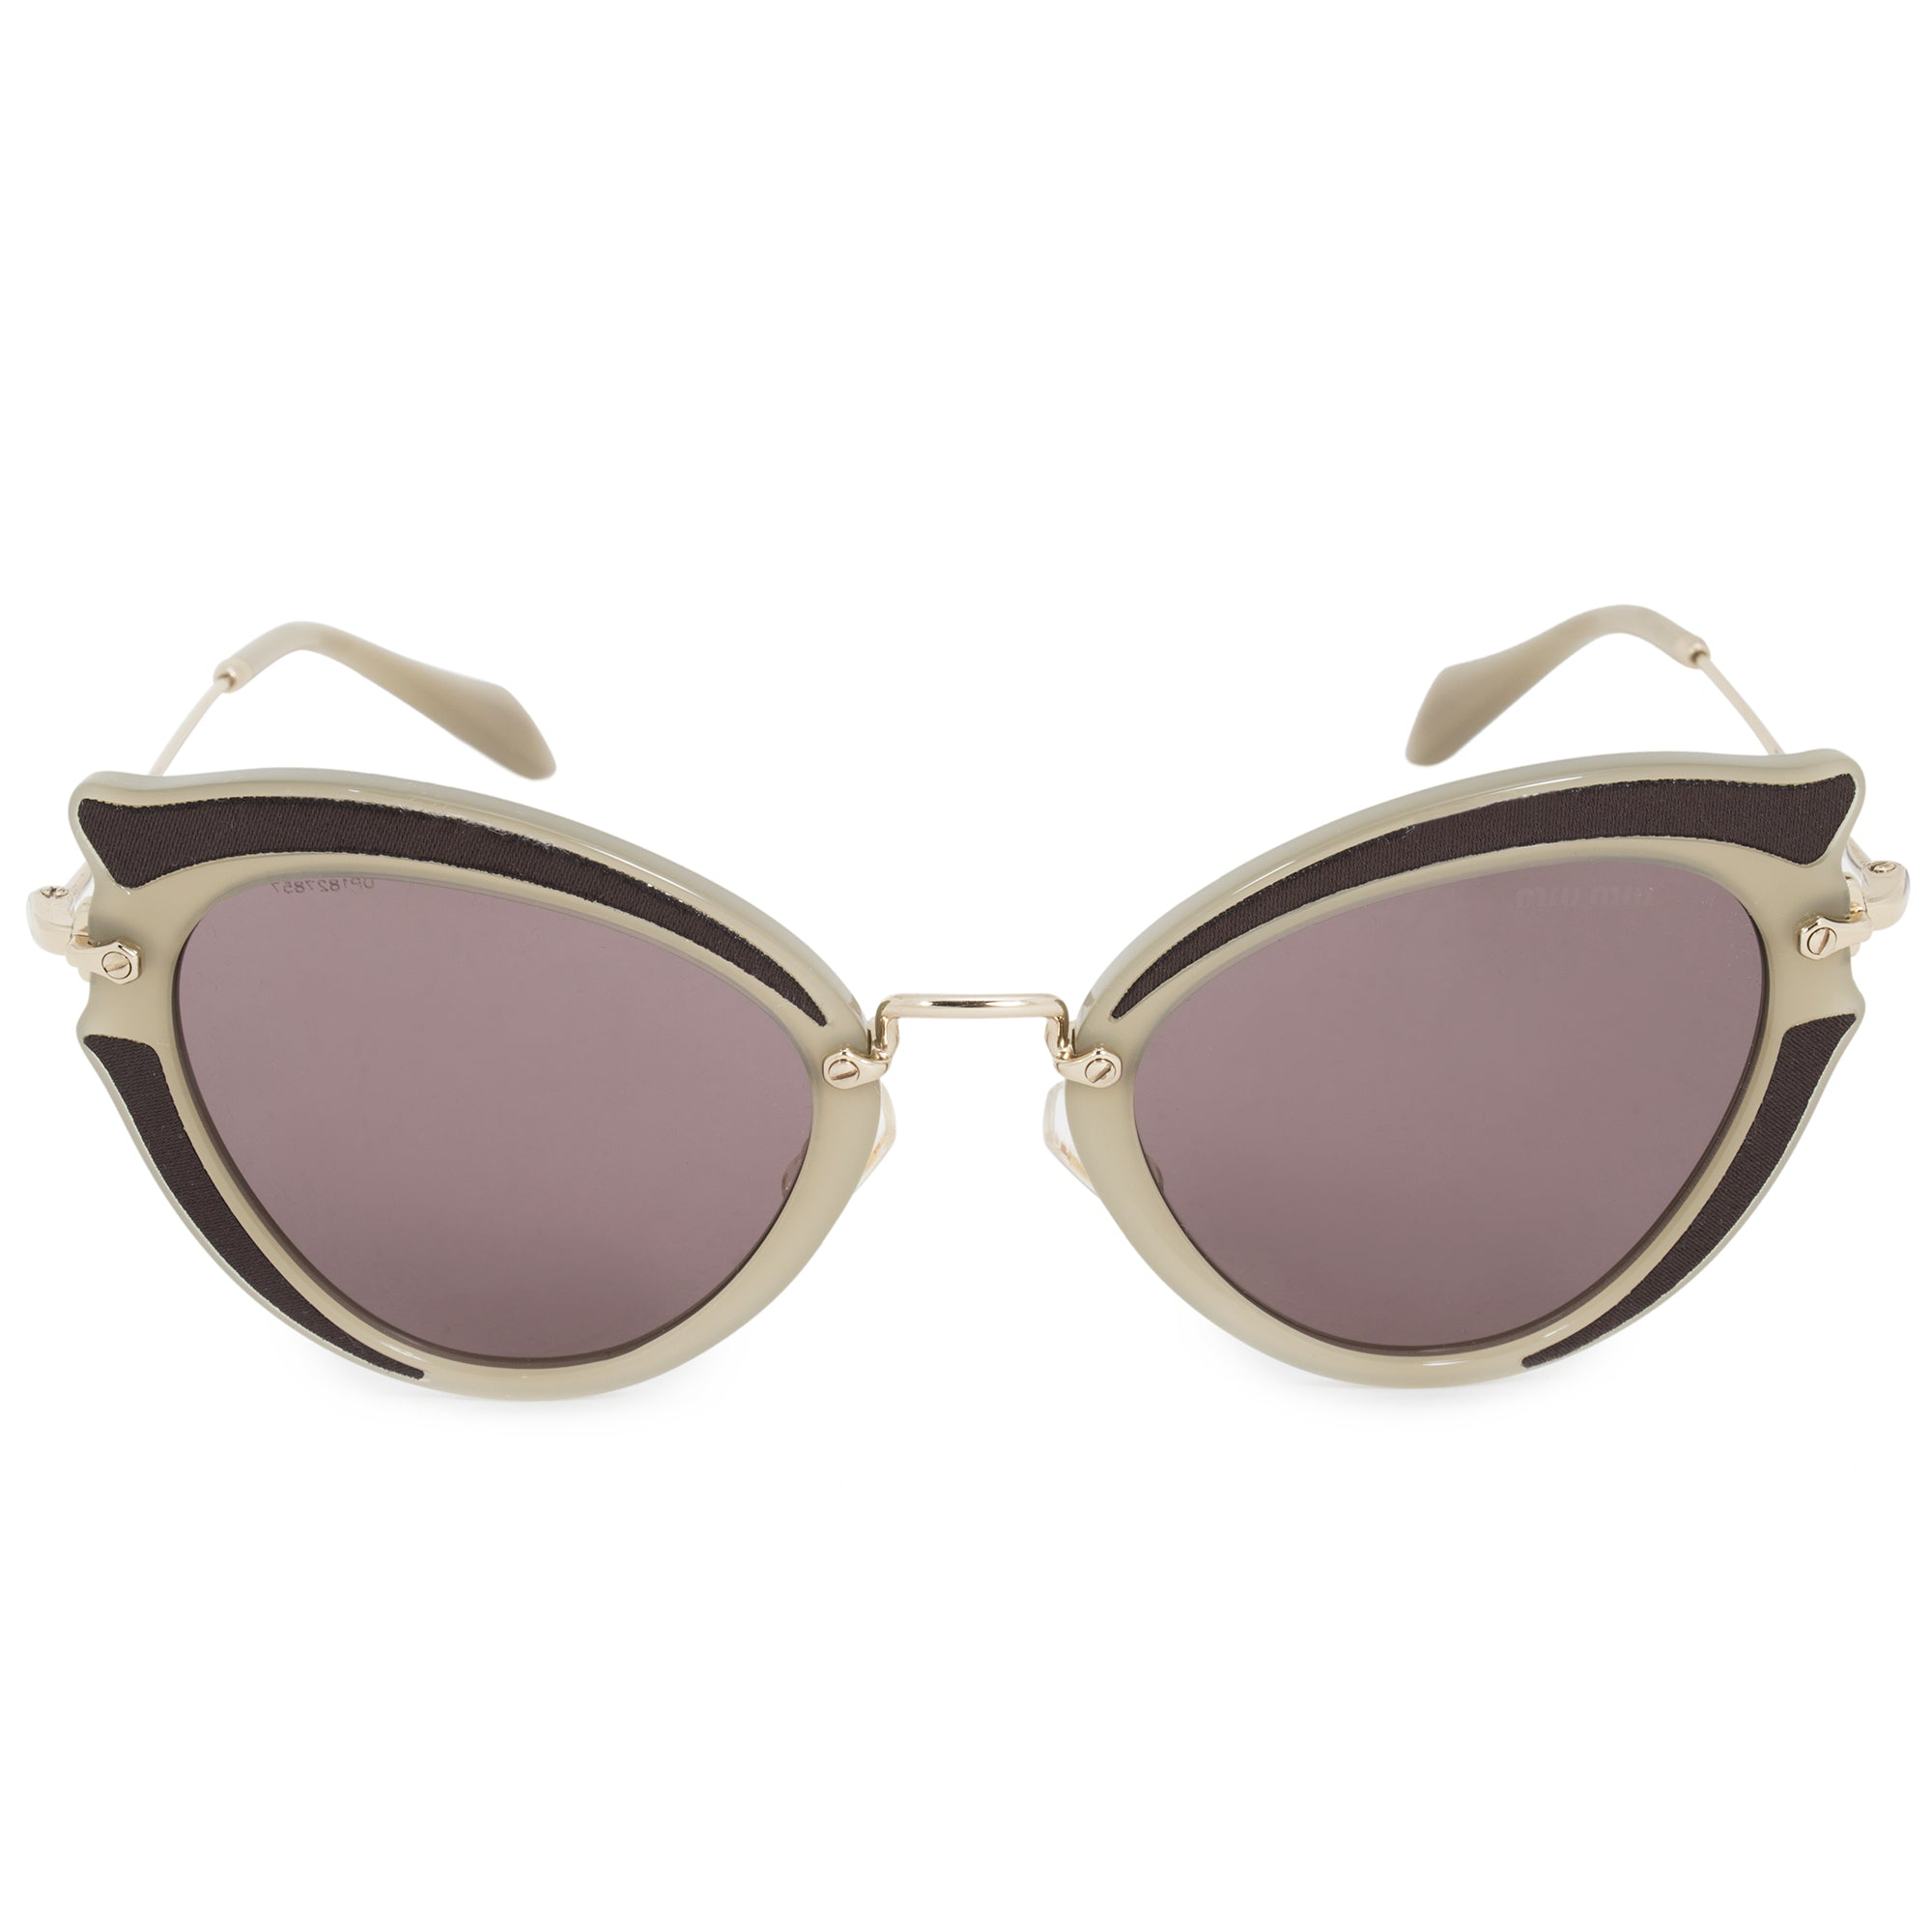 Miu Miu Cat Eye Sunglasses SMU05SS VHY6X1 52